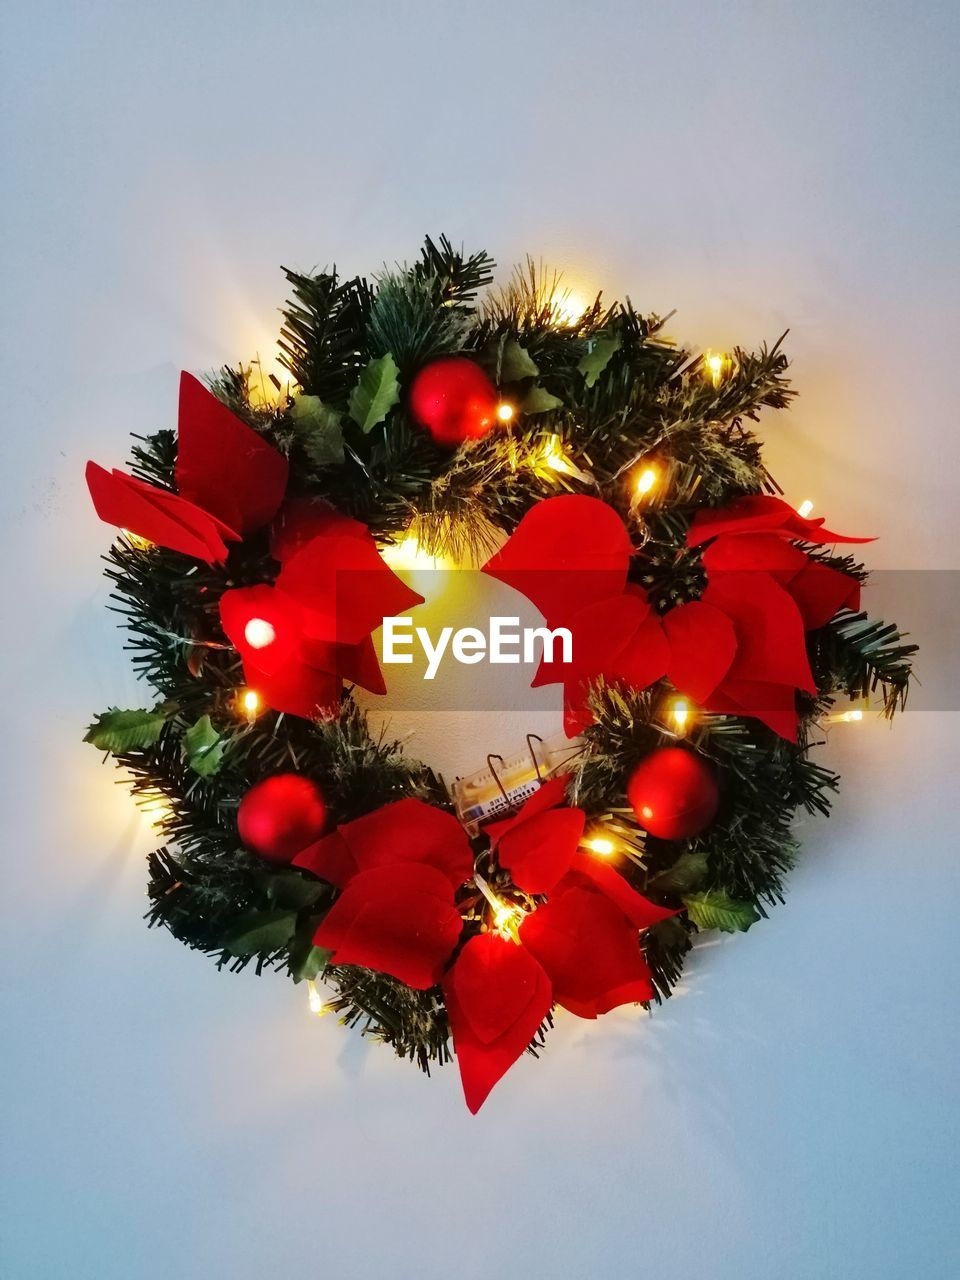 decoration, christmas, holiday, celebration, sky, illuminated, tree, christmas decoration, christmas tree, no people, christmas lights, christmas ornament, nature, low angle view, red, close-up, plant, holiday - event